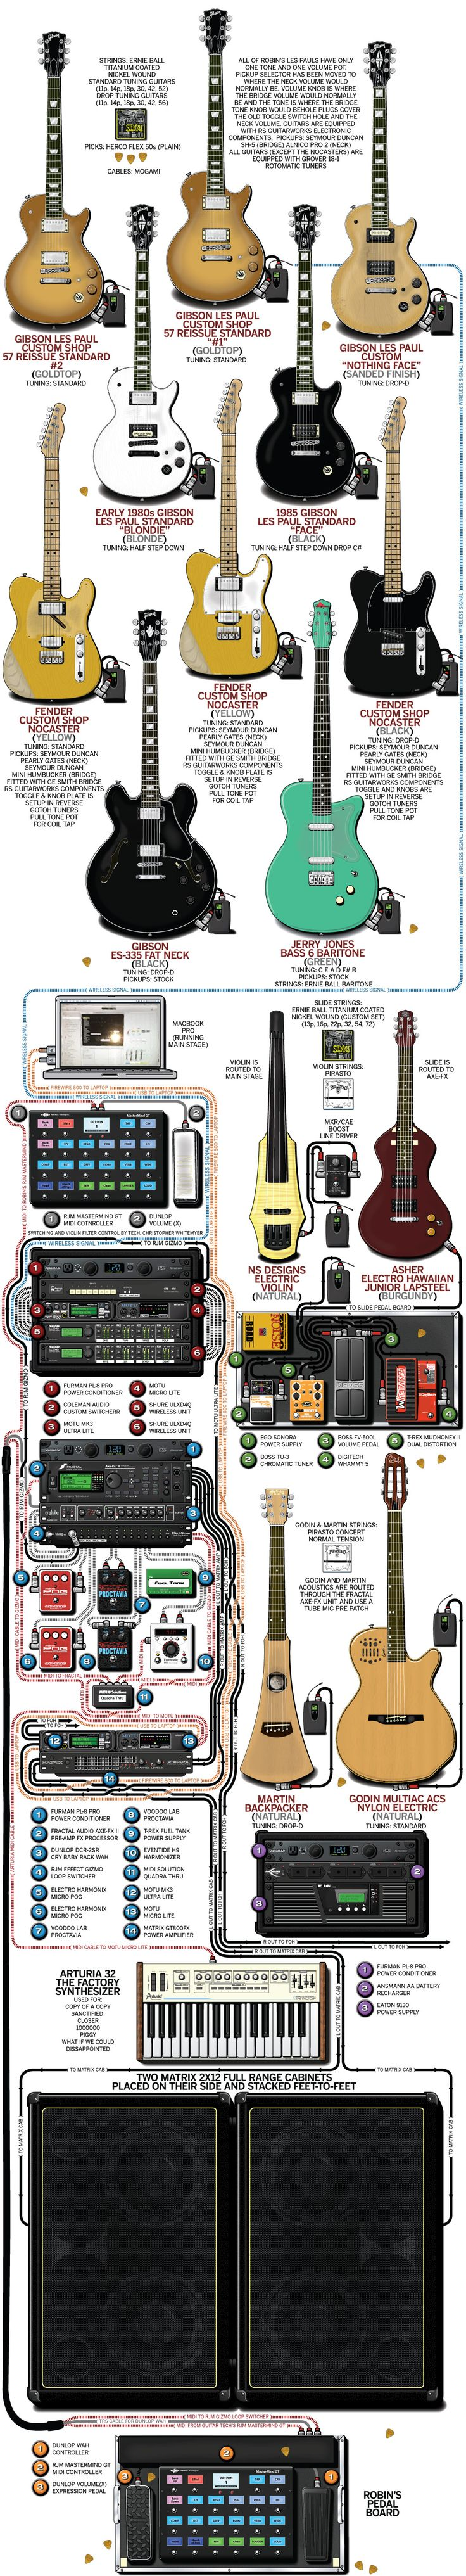 A detailed gear diagram of Robin Finck's Nine Inch Nails stage setup that traces the signal flow of the equipment in his 2014 guitar rig.